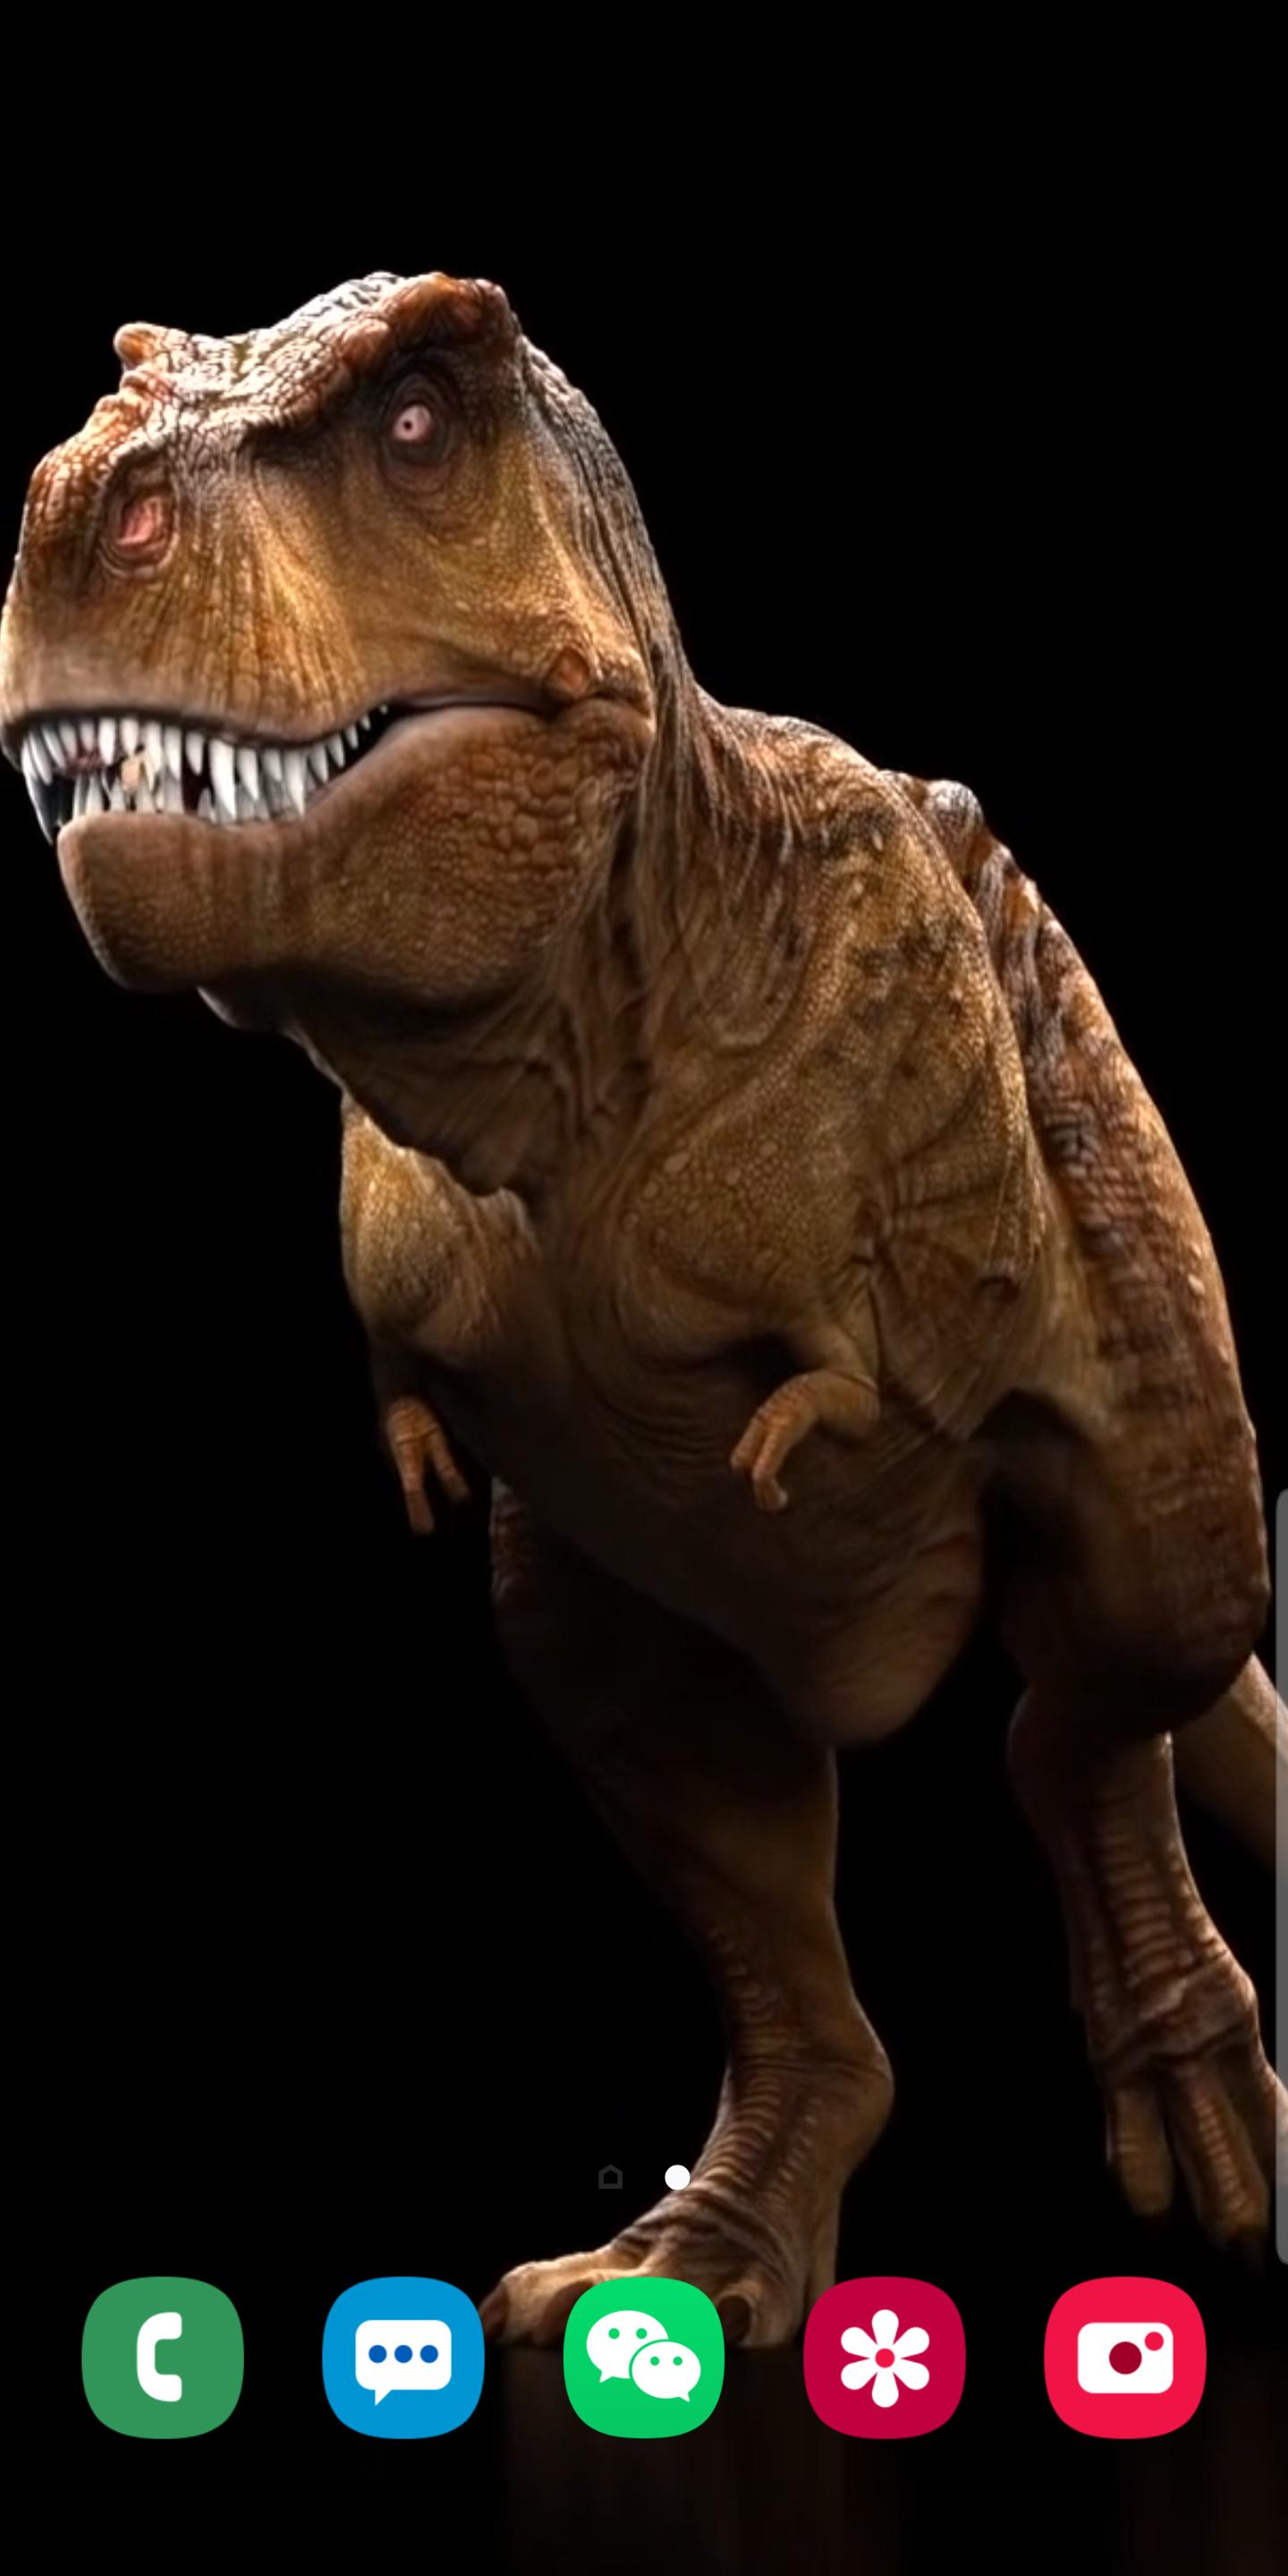 3d Scary Dinosaurs Live Wallpaper For Android Apk Download